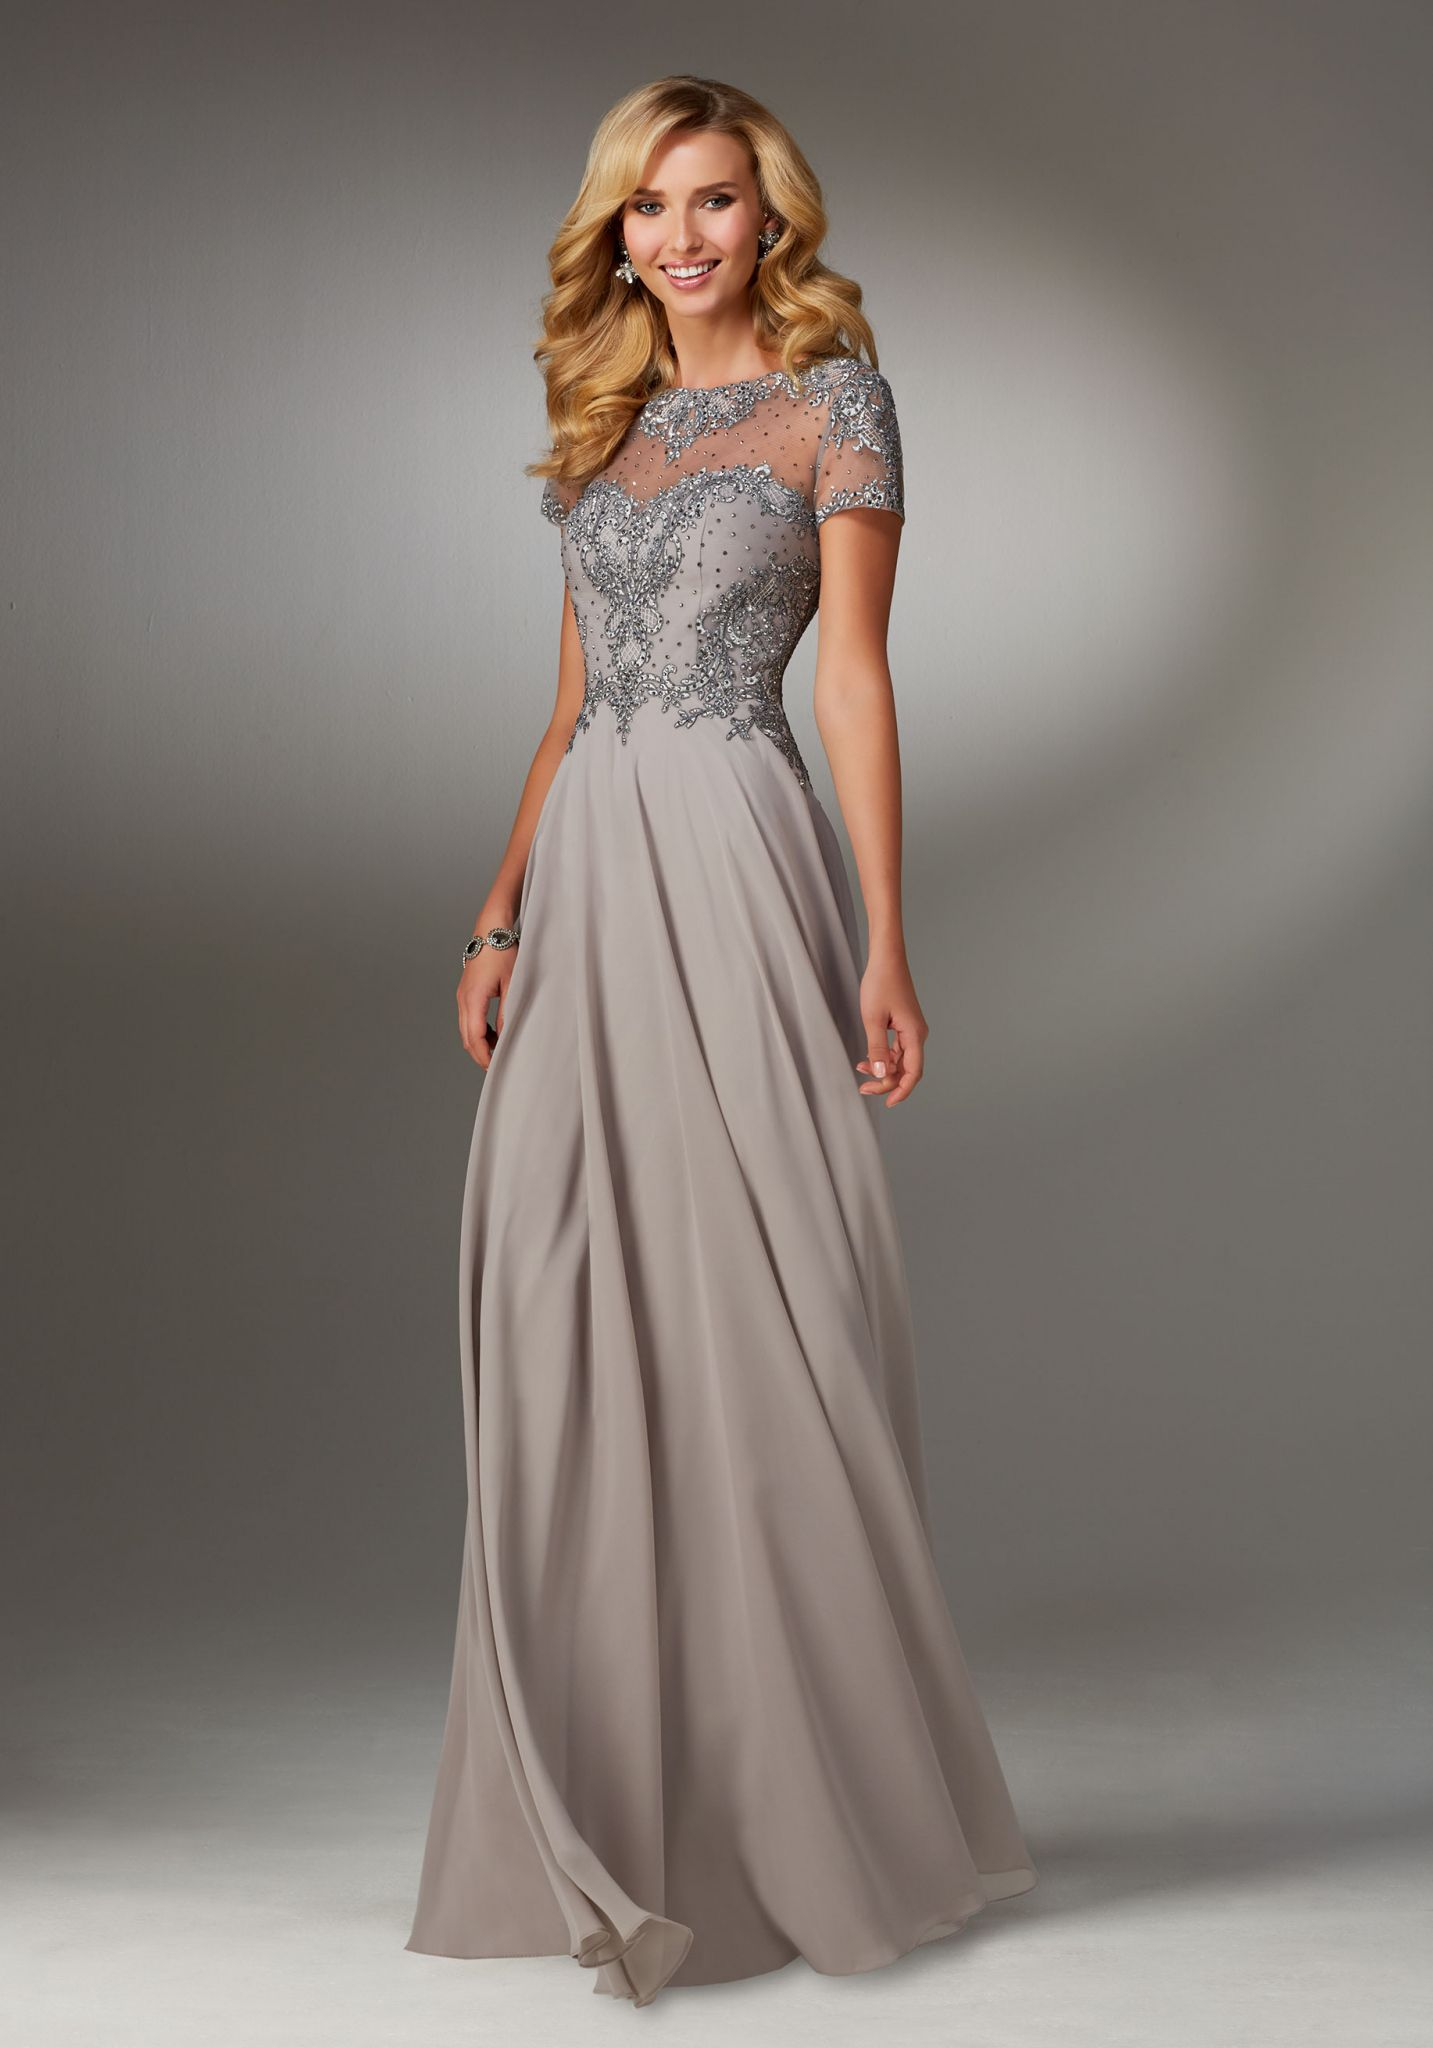 Special Occasion Dresses For Weddings Cold Shoulder Wedding Check More At Http